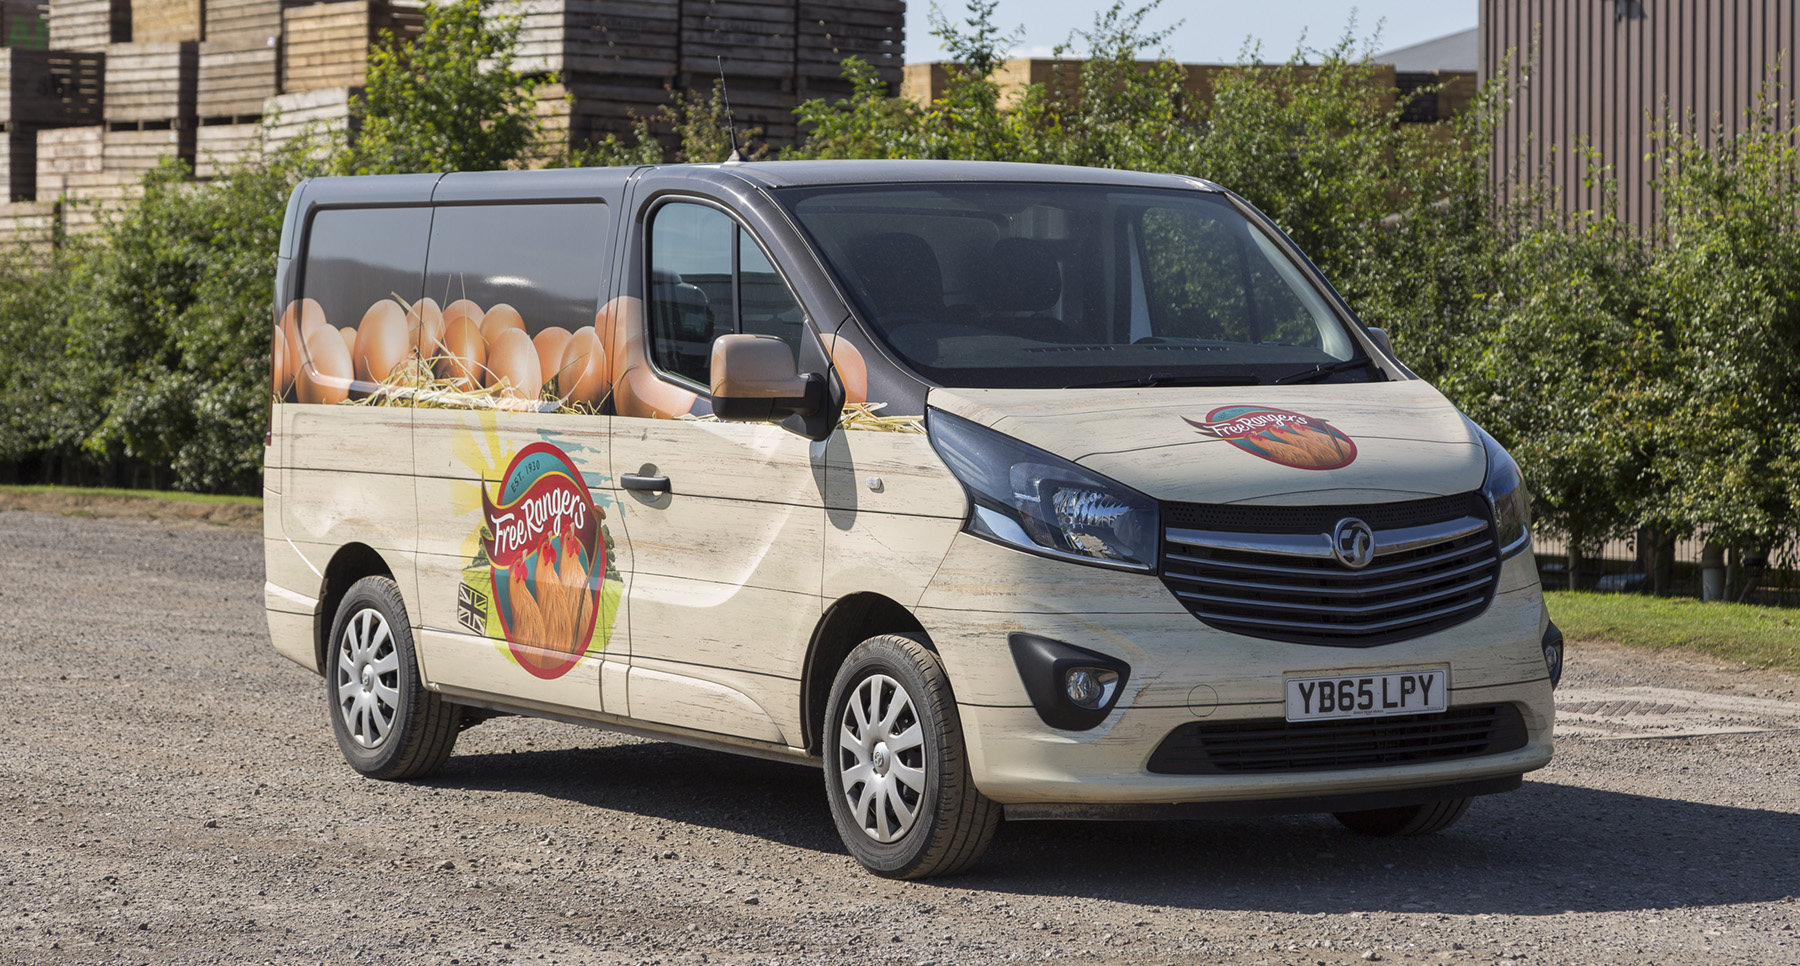 Chippindale Foods vivaro full wrap vehicle graphics side and front